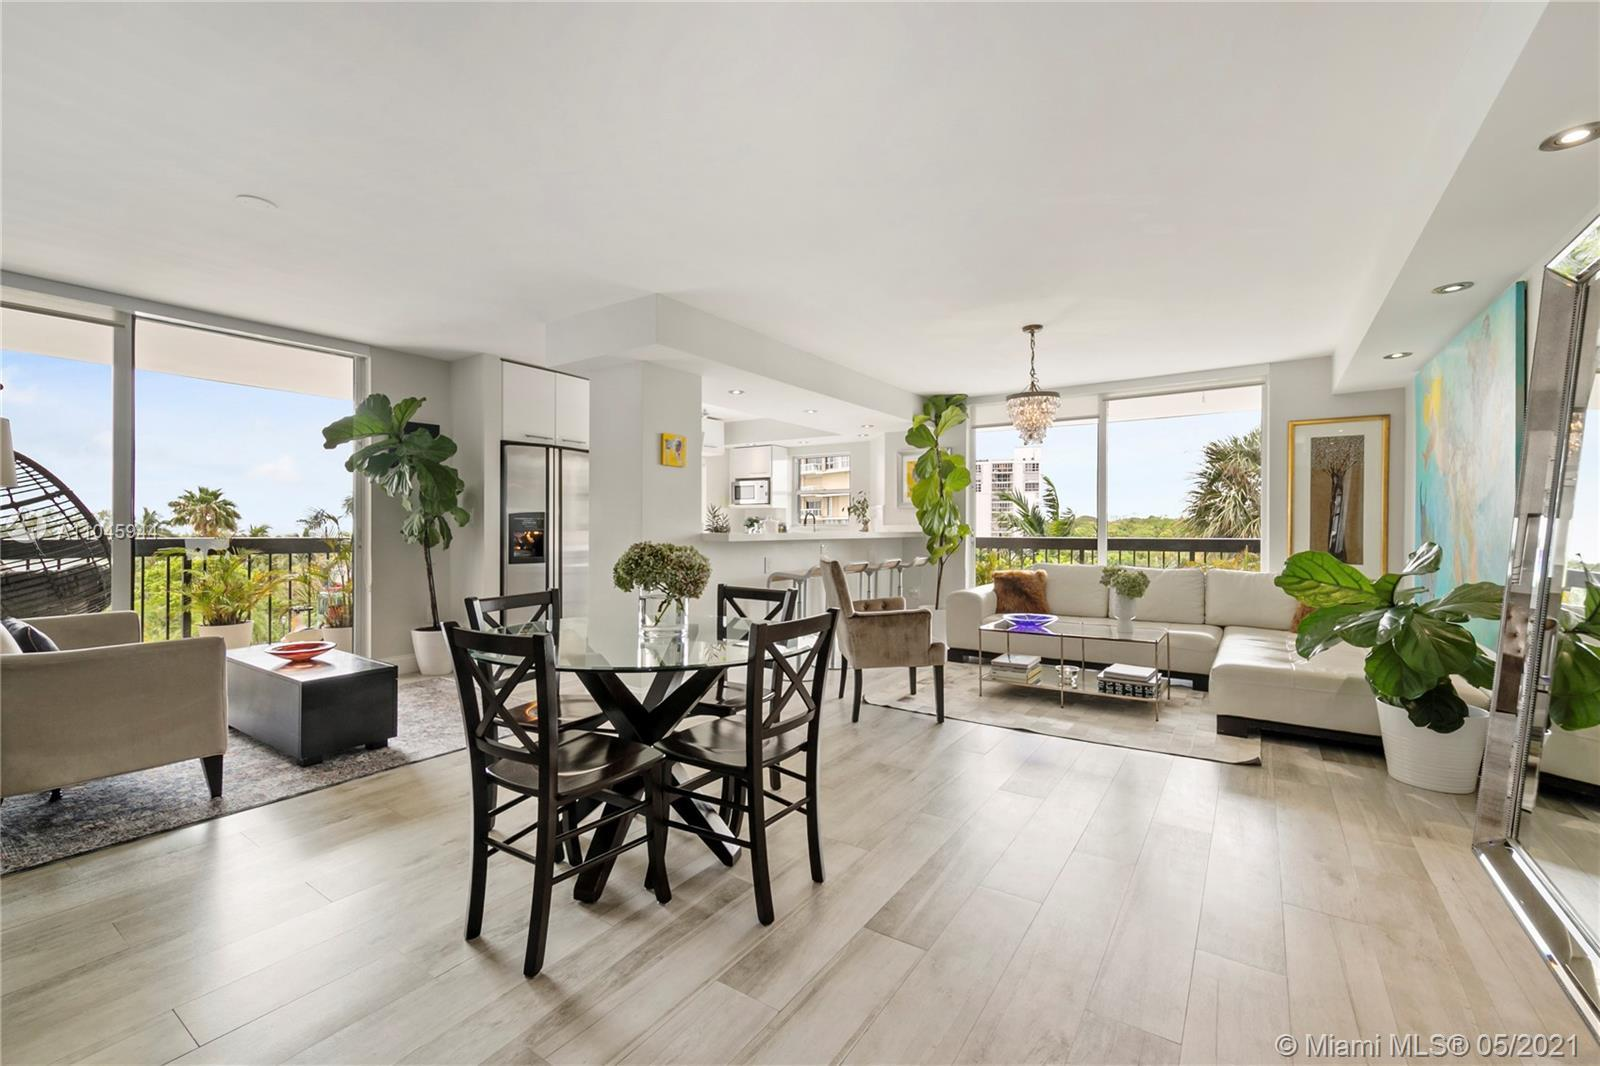 Stunning completely large 2 bed /2 bath condo plus den with beautiful natural light in the heart of